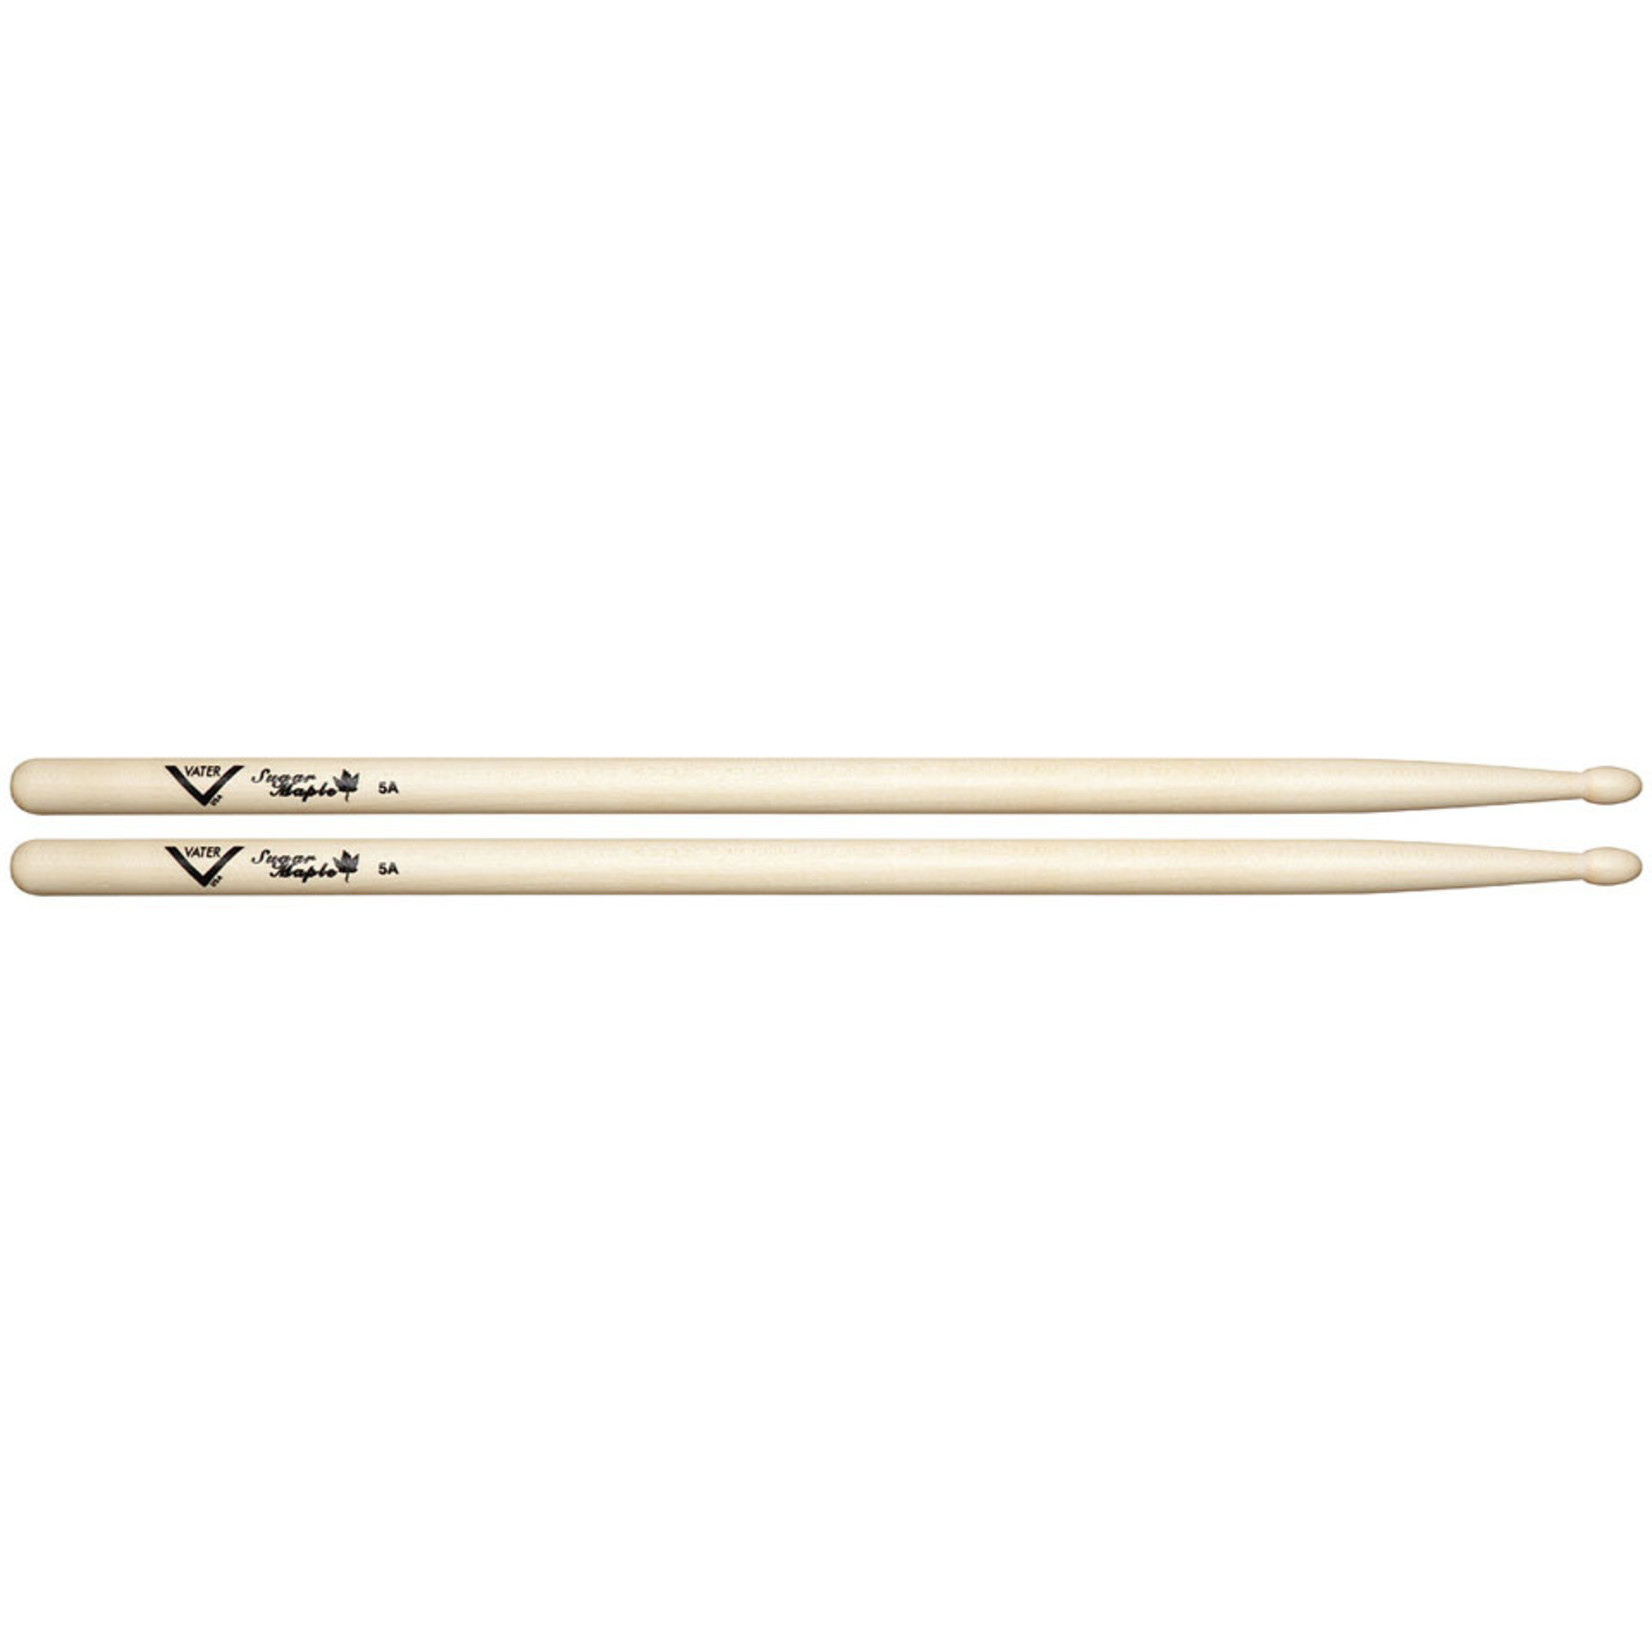 Vater Vater Sugar Maple 5A